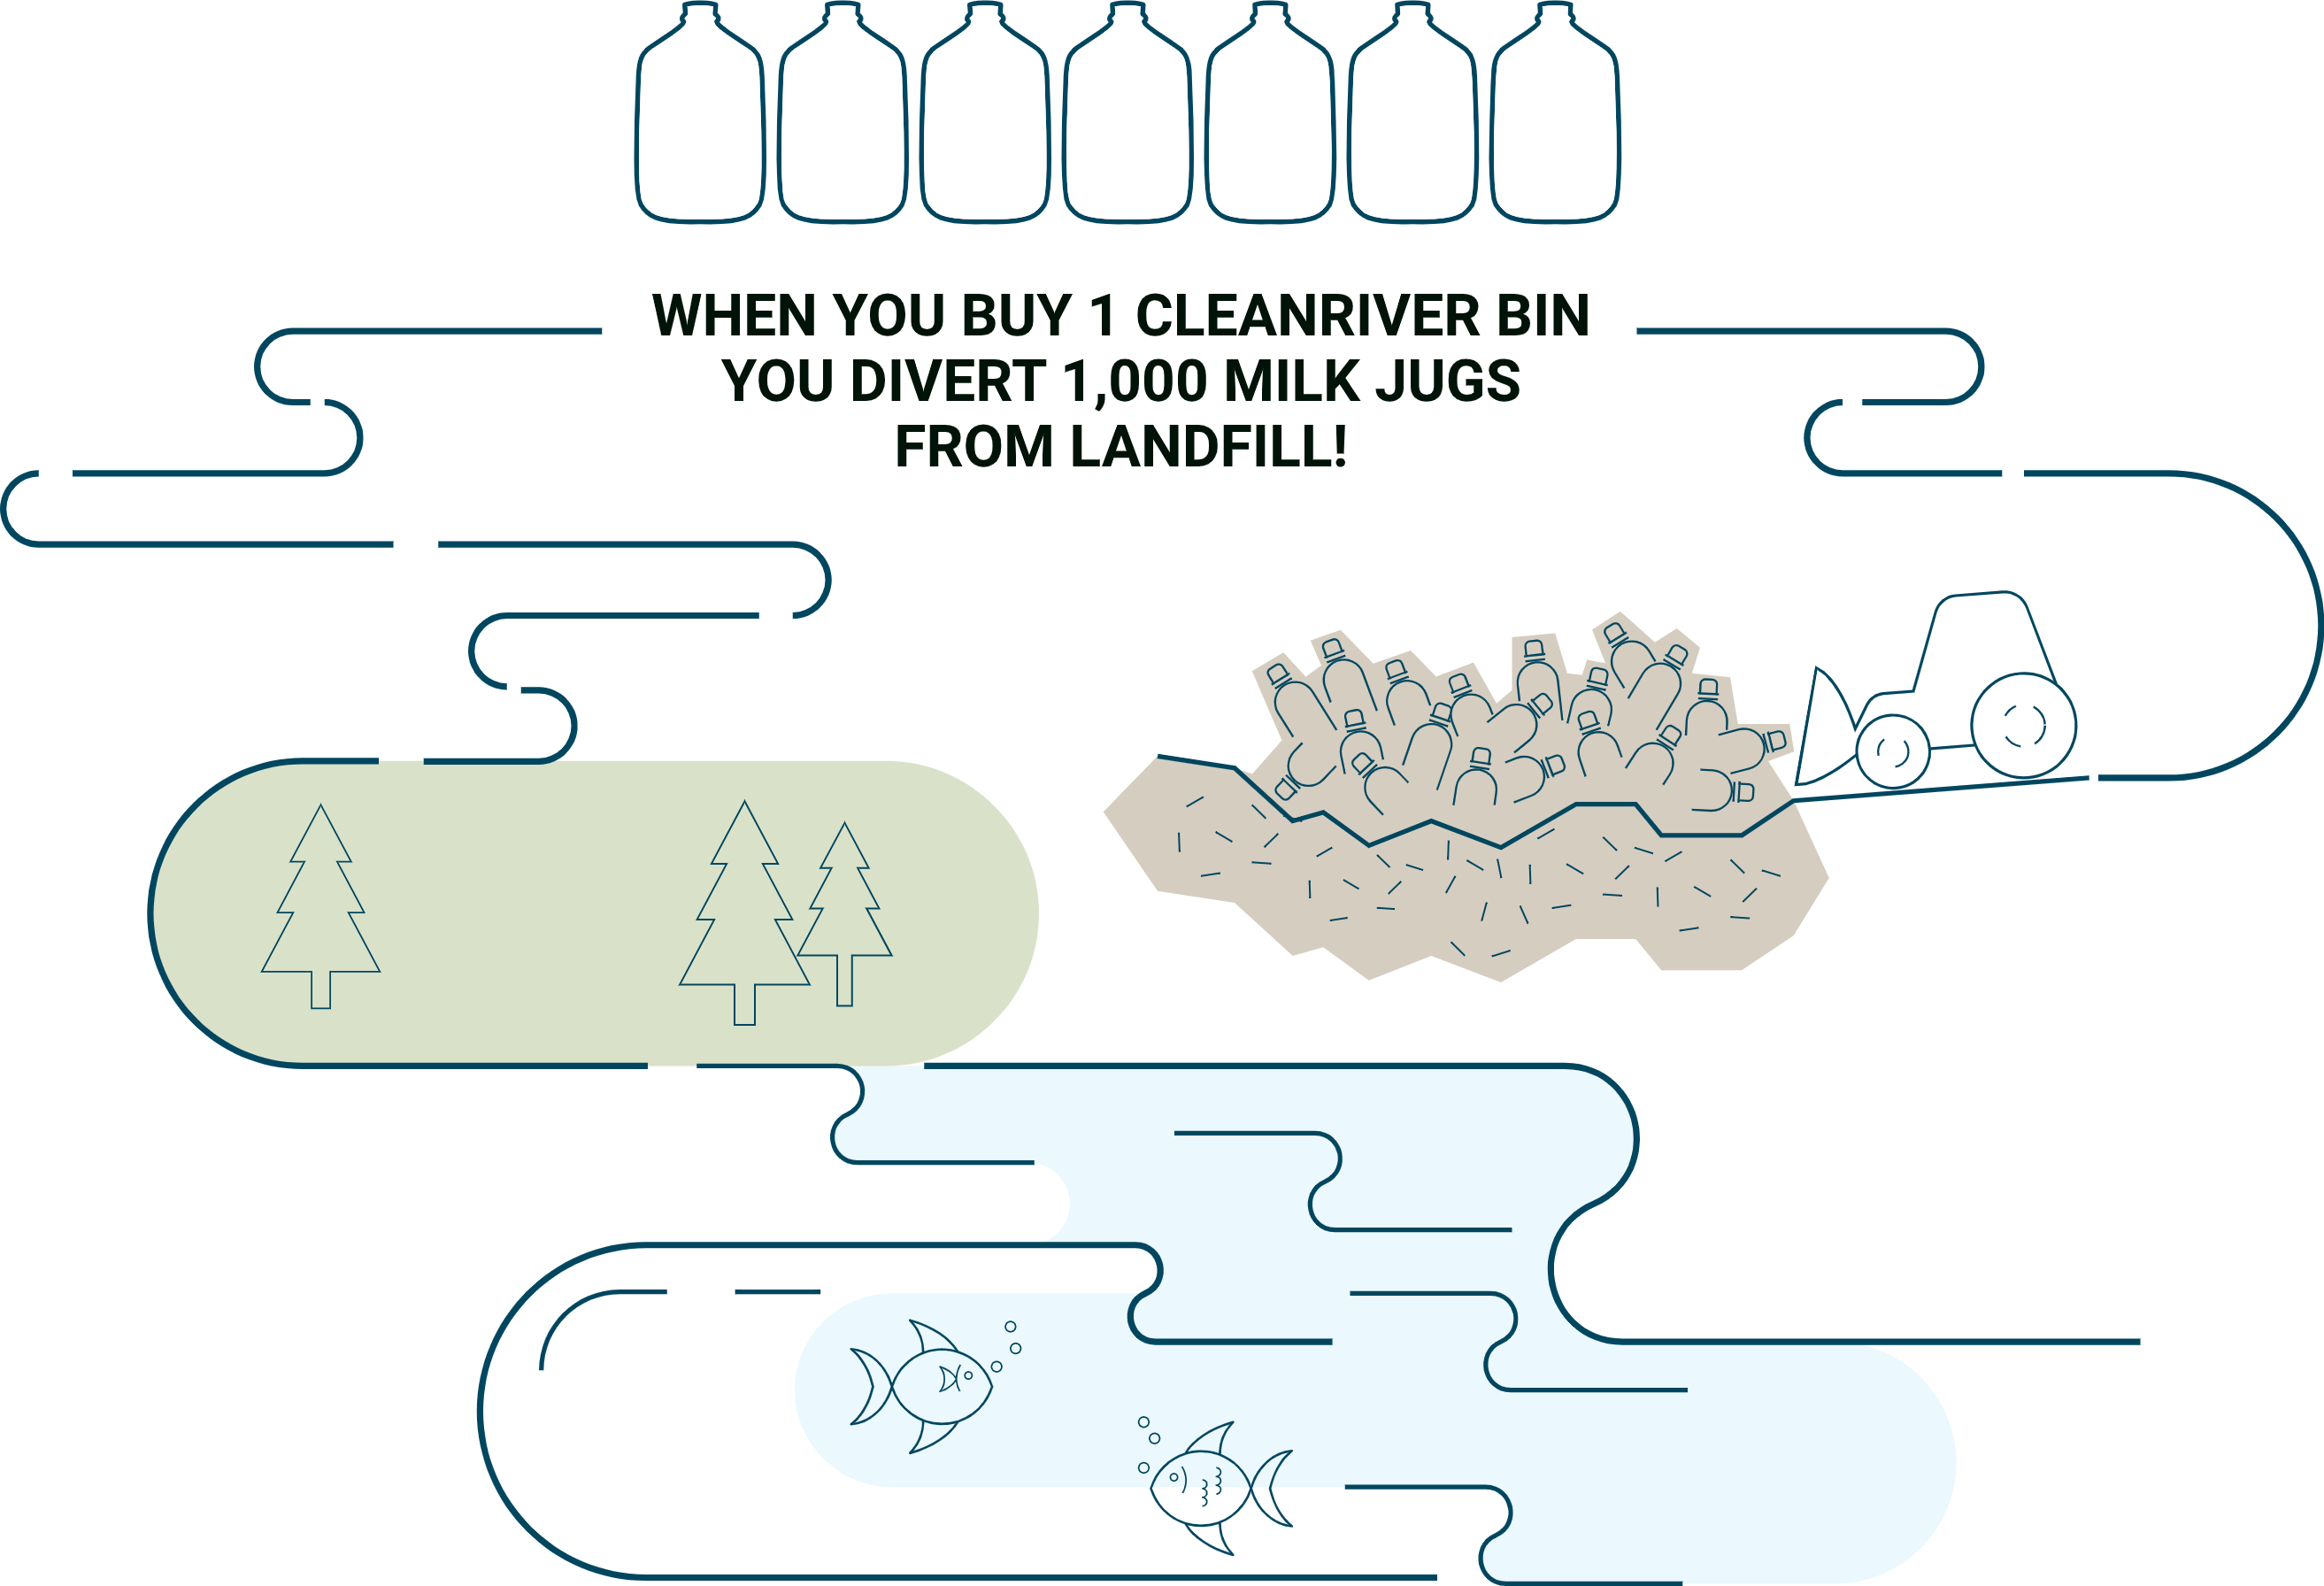 When you buy 1 Cleanriver bin you divert 1,000 milk jugs from landfill!